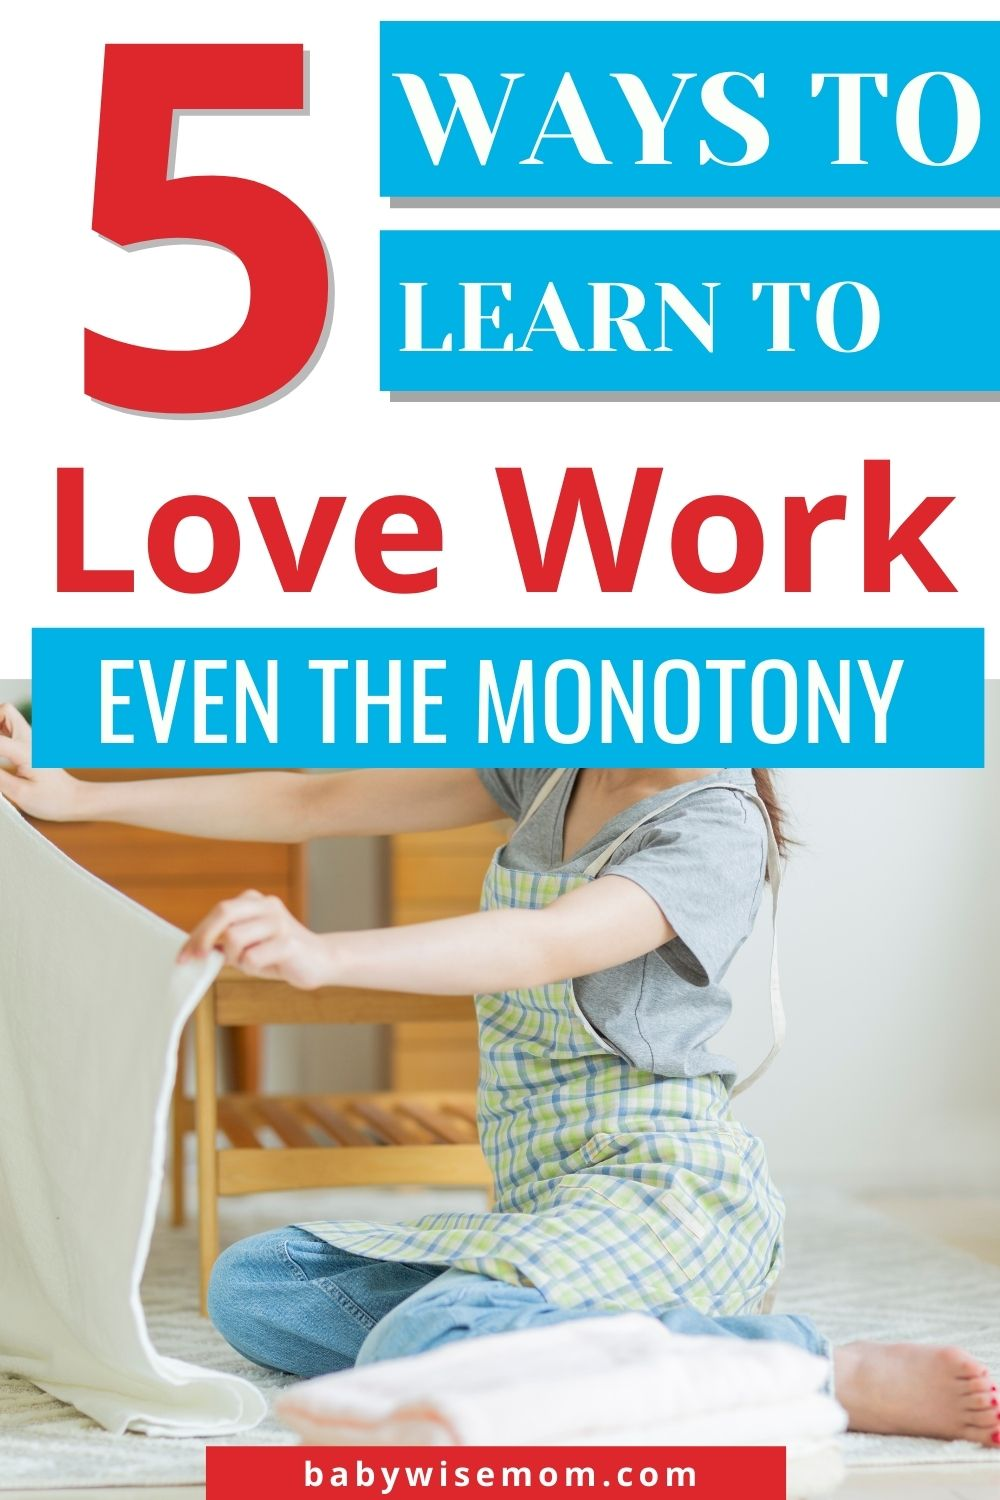 Learning to love our work